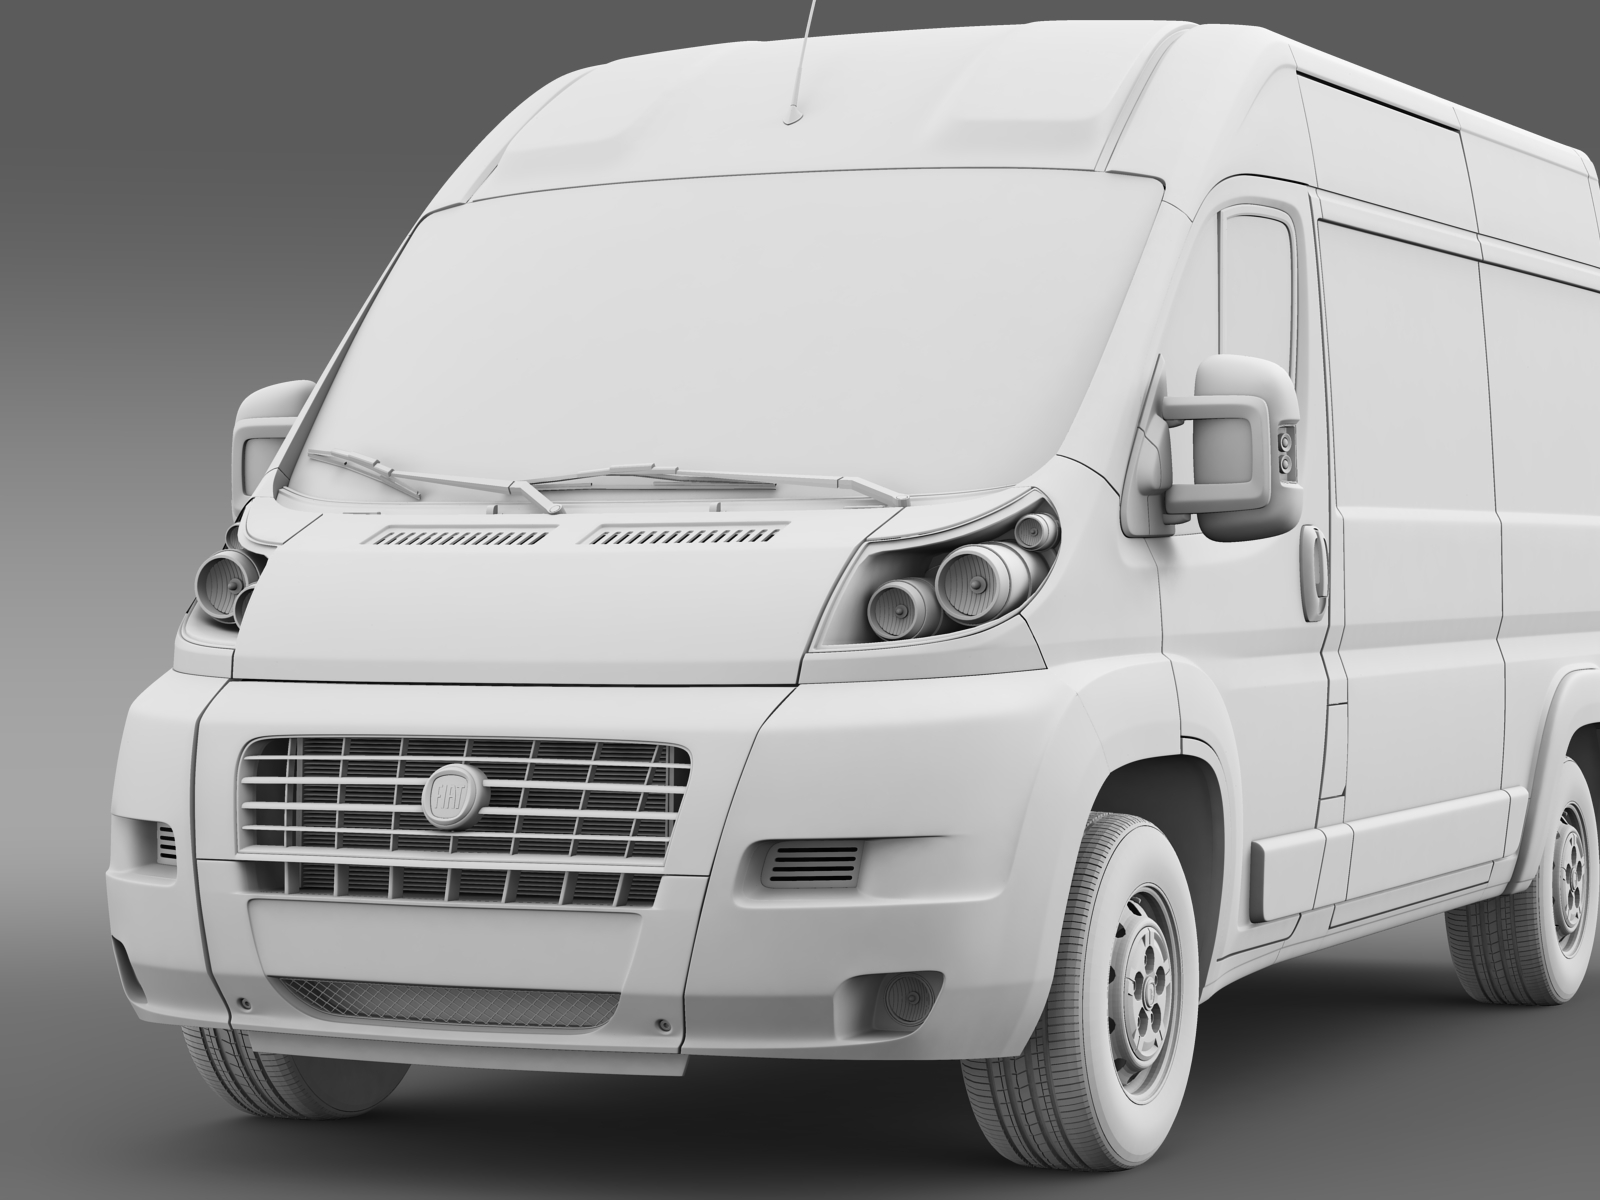 fiat ducato van l2h2 2006 2014 by creator 3d 3docean. Black Bedroom Furniture Sets. Home Design Ideas